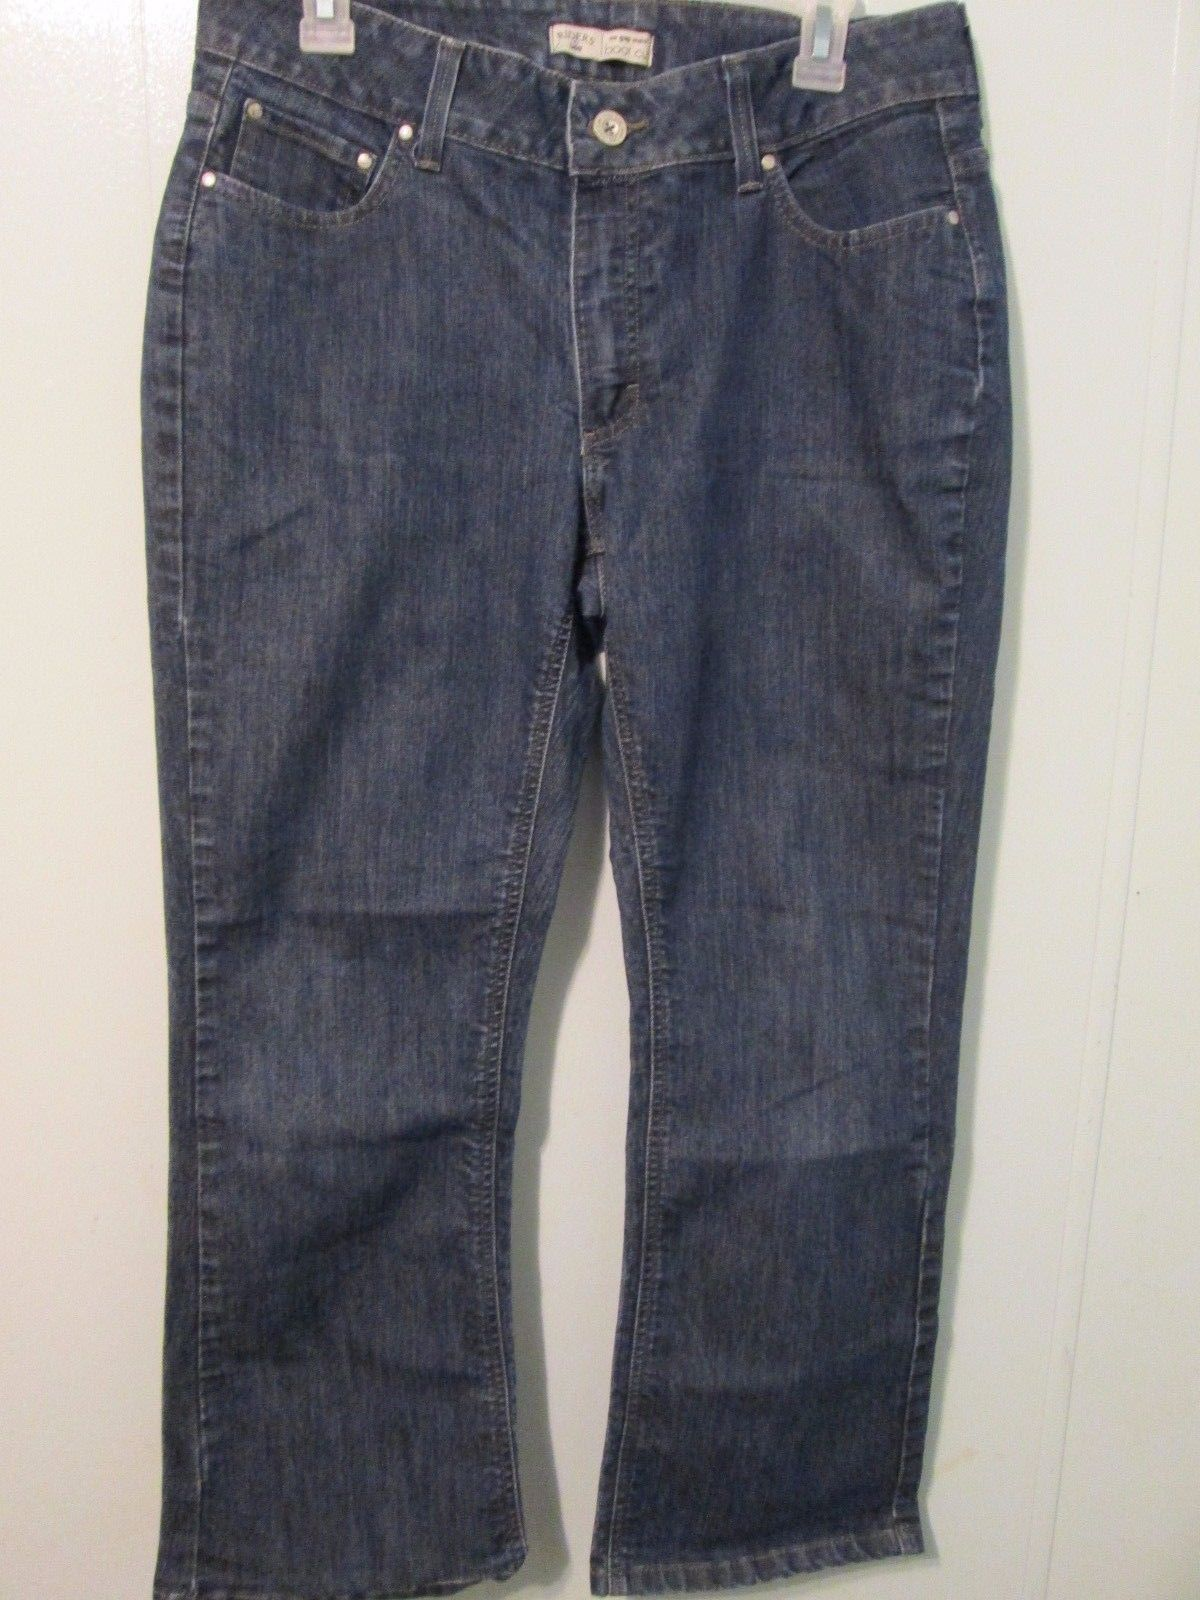 Ladies boot cut jeans Size 12P by Riders by Lee  MMARS327A